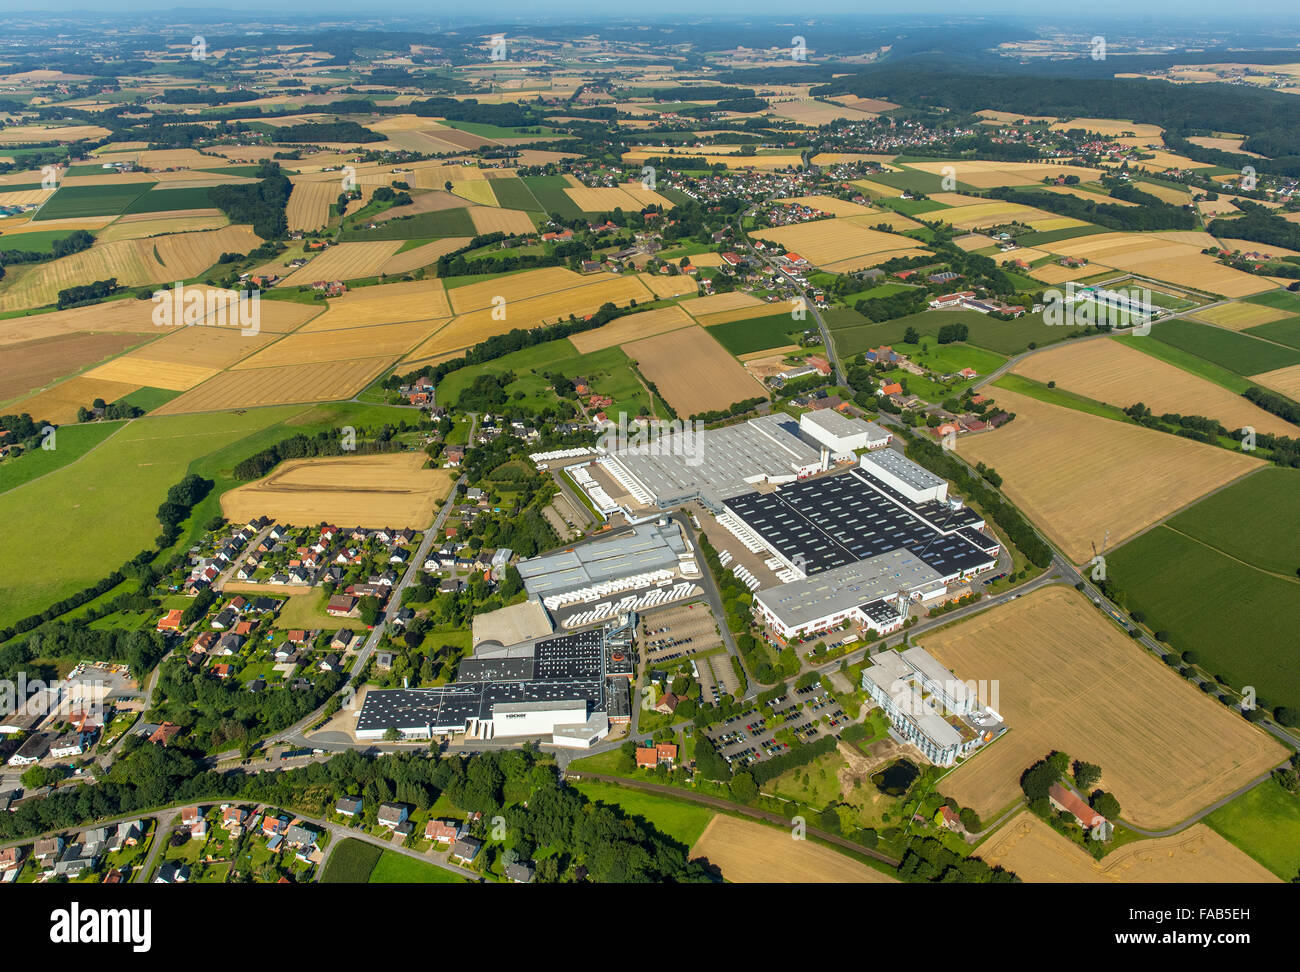 aerial view bieren h cker k chen gmbh co kg r dinghausen east stock photo 92444201 alamy. Black Bedroom Furniture Sets. Home Design Ideas